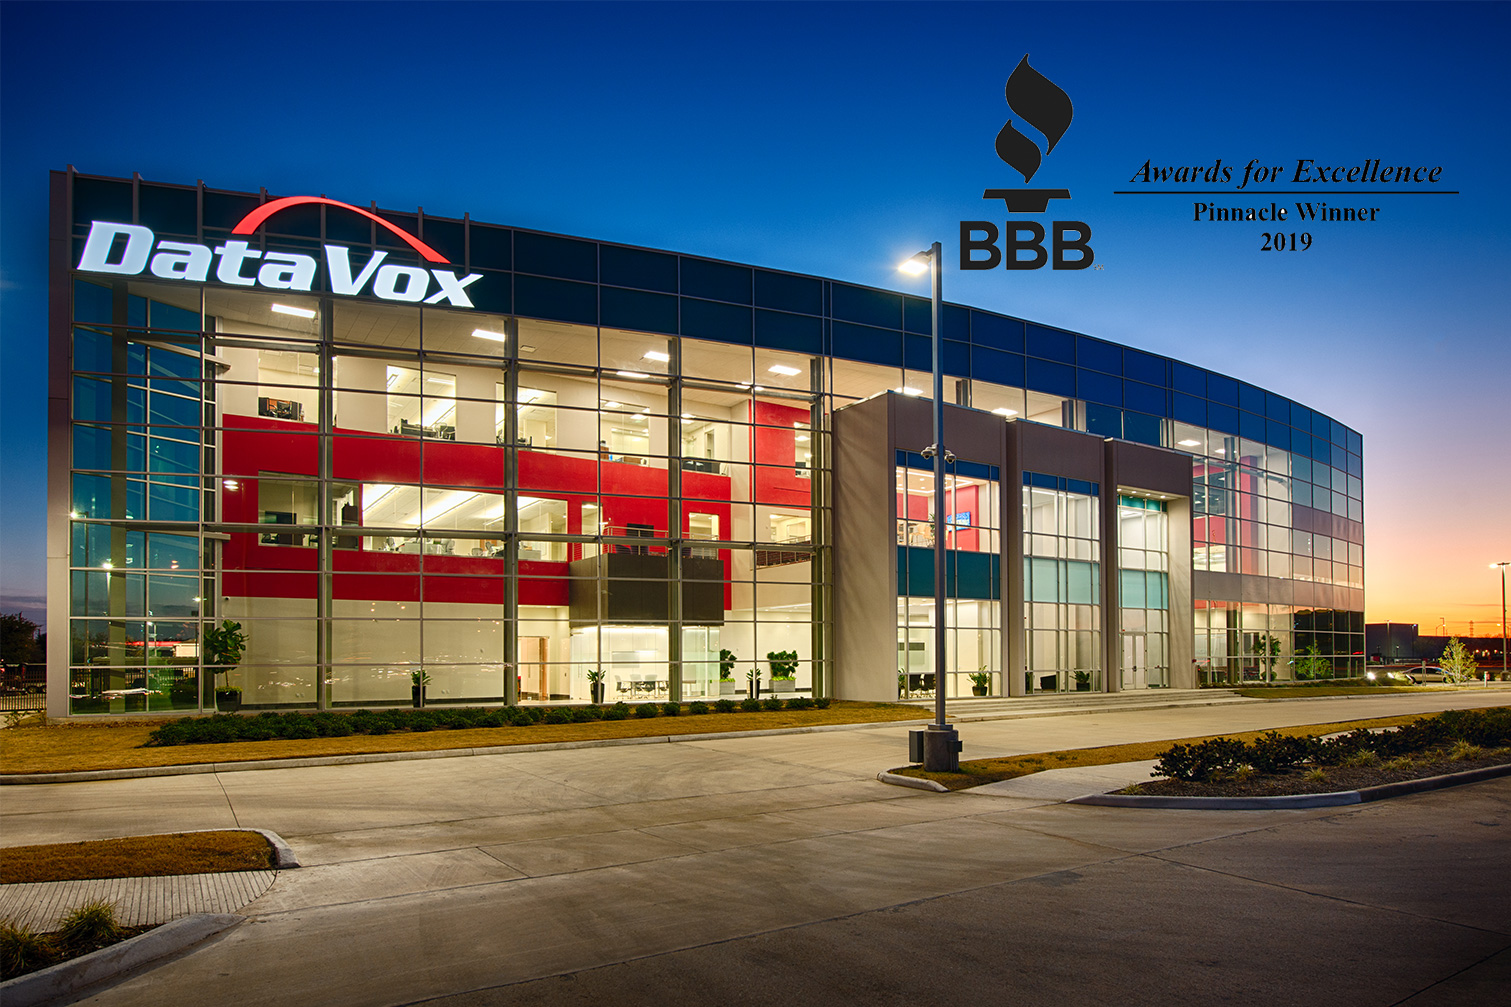 New DVX bulding with BBB